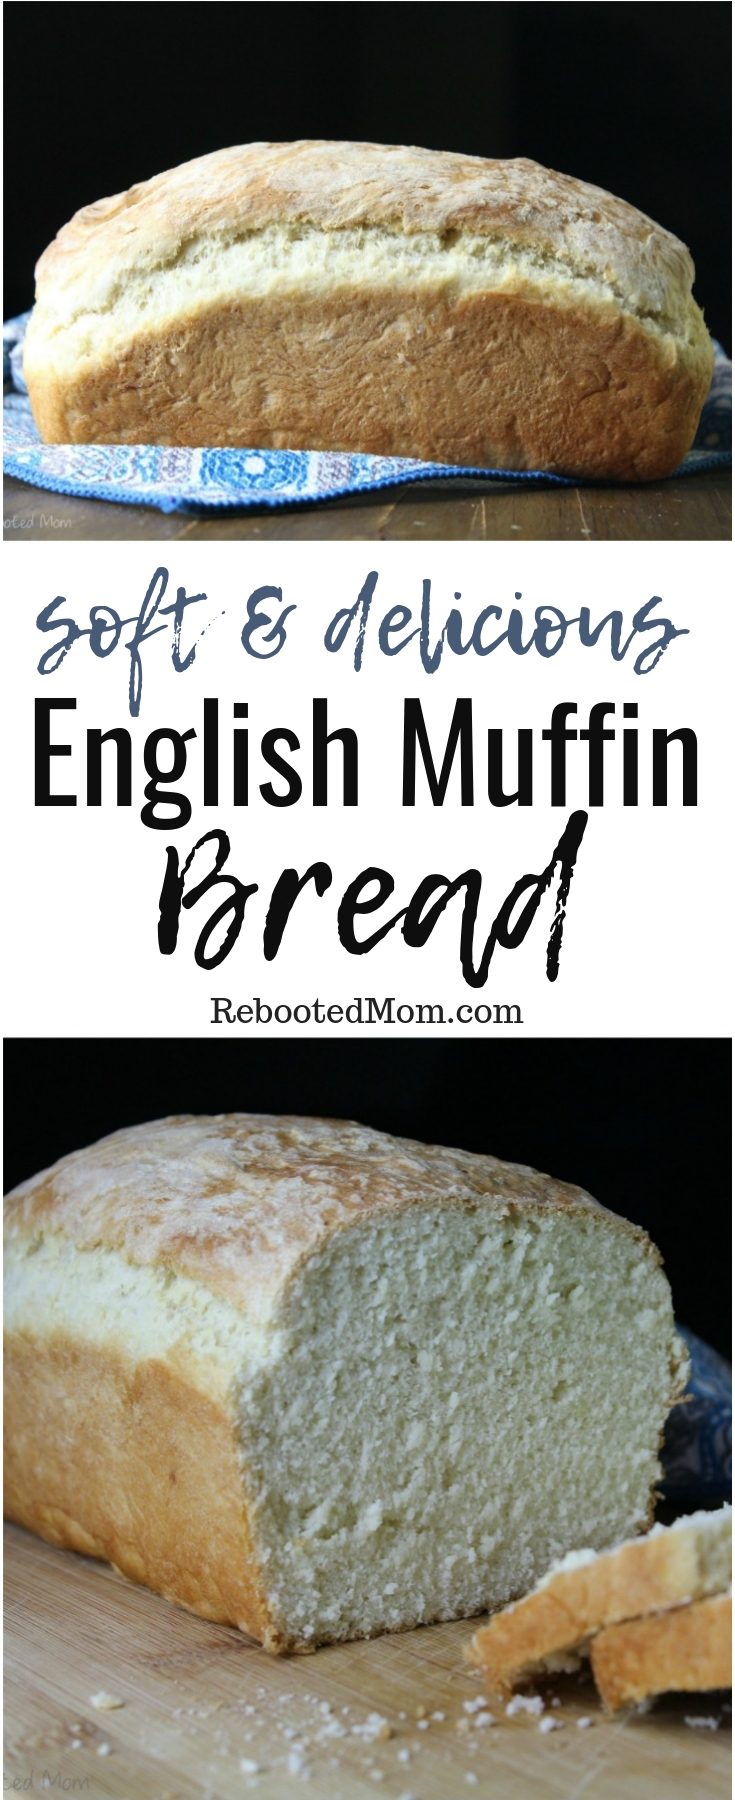 Freshly baked loaf of English Muffin Bread.